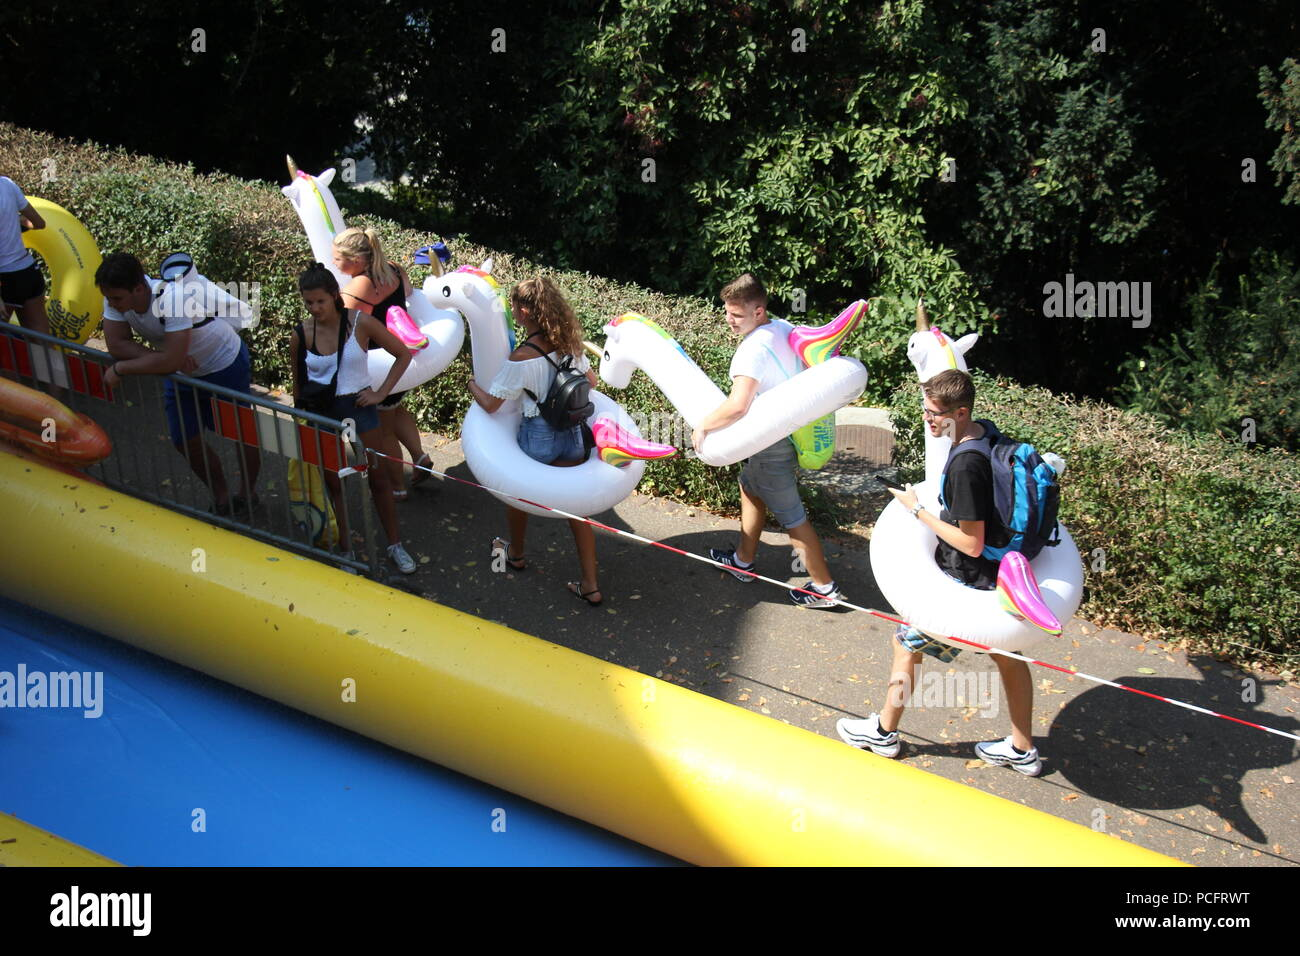 Basel, Switzerland. 1st Aug 2018. People at the Slide my city event on National Swiss Day in Basel Switzerland Credit: Gari Wyn Williams/Alamy Live News Stock Photo